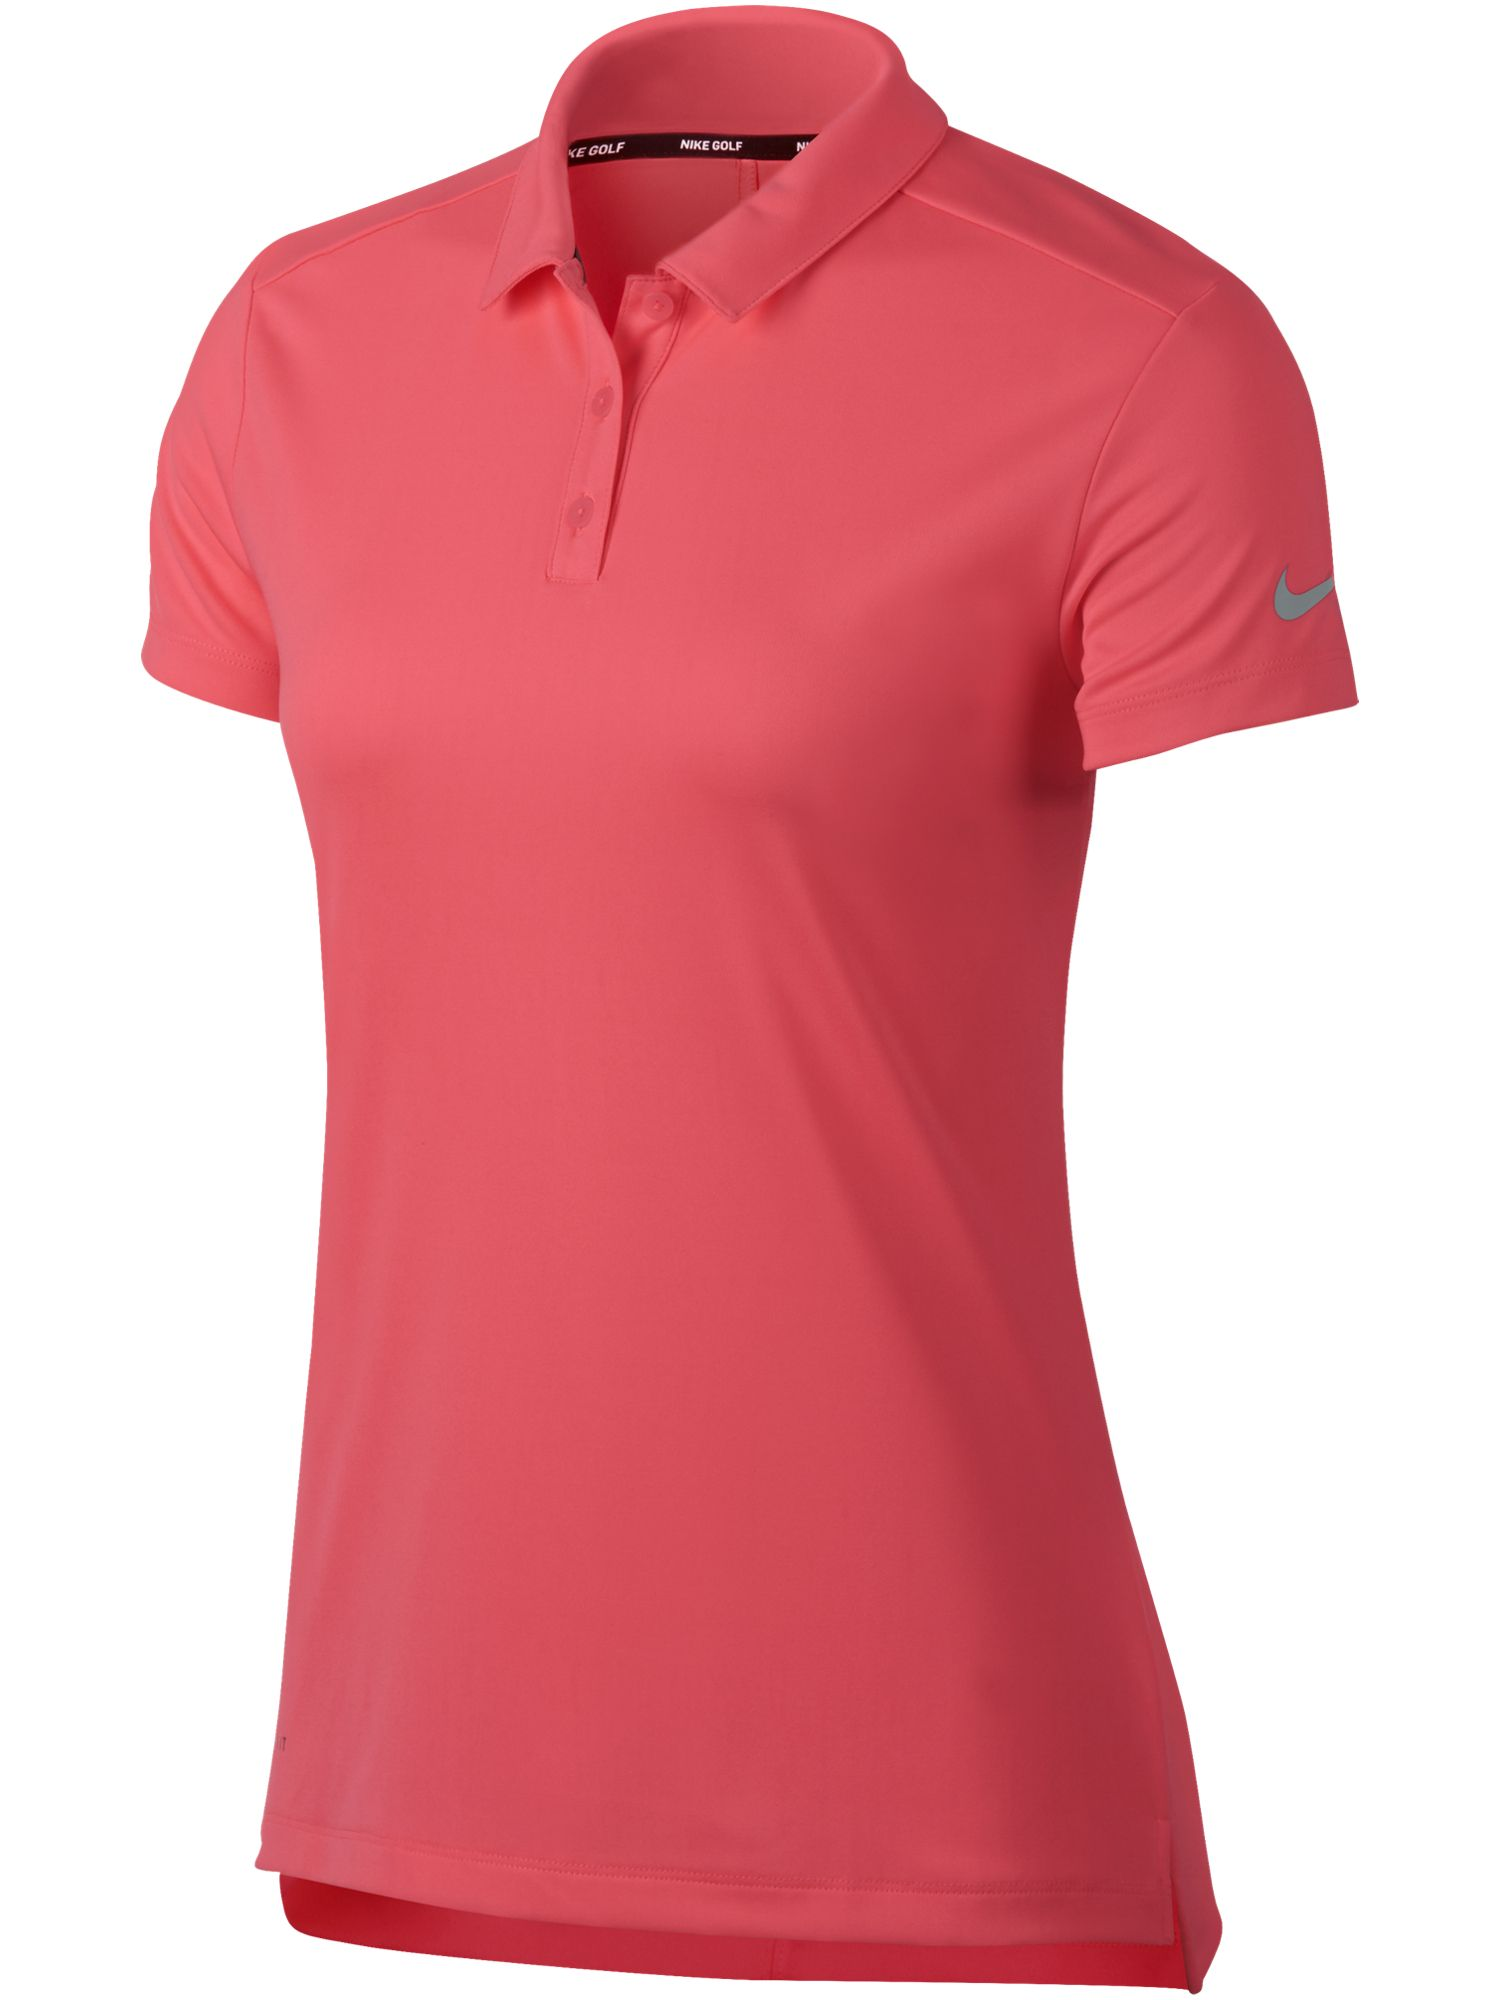 Nike Golf Dry Short Sleeve Polo, Hot Pink